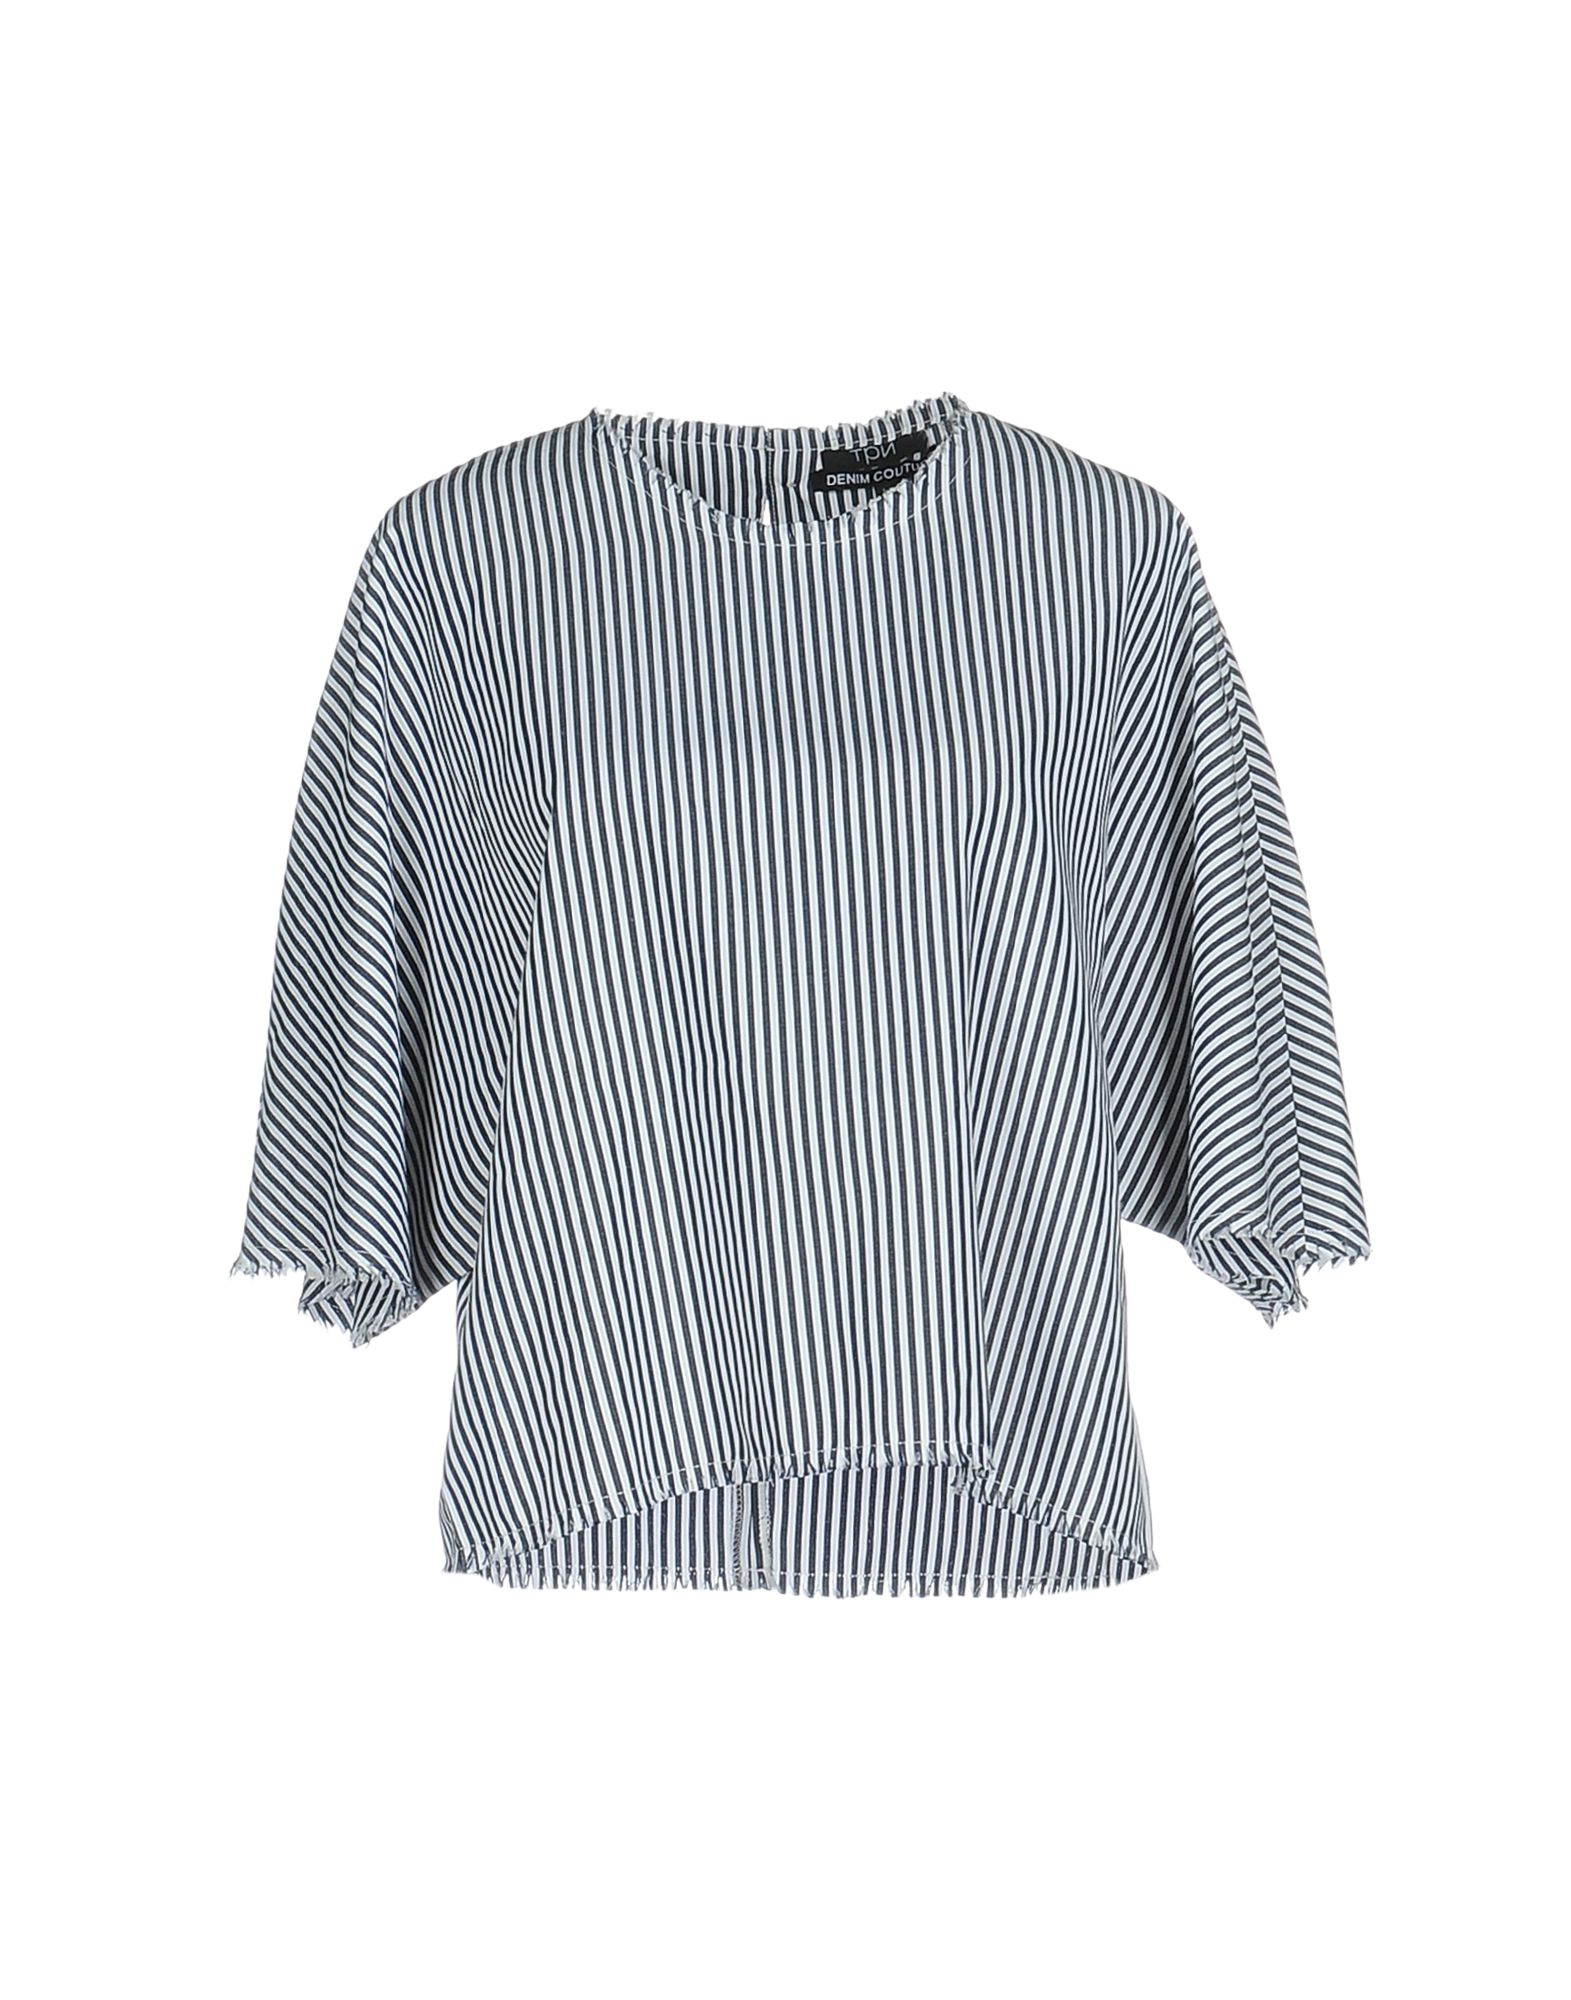 TPN Blouse in Slate Blue